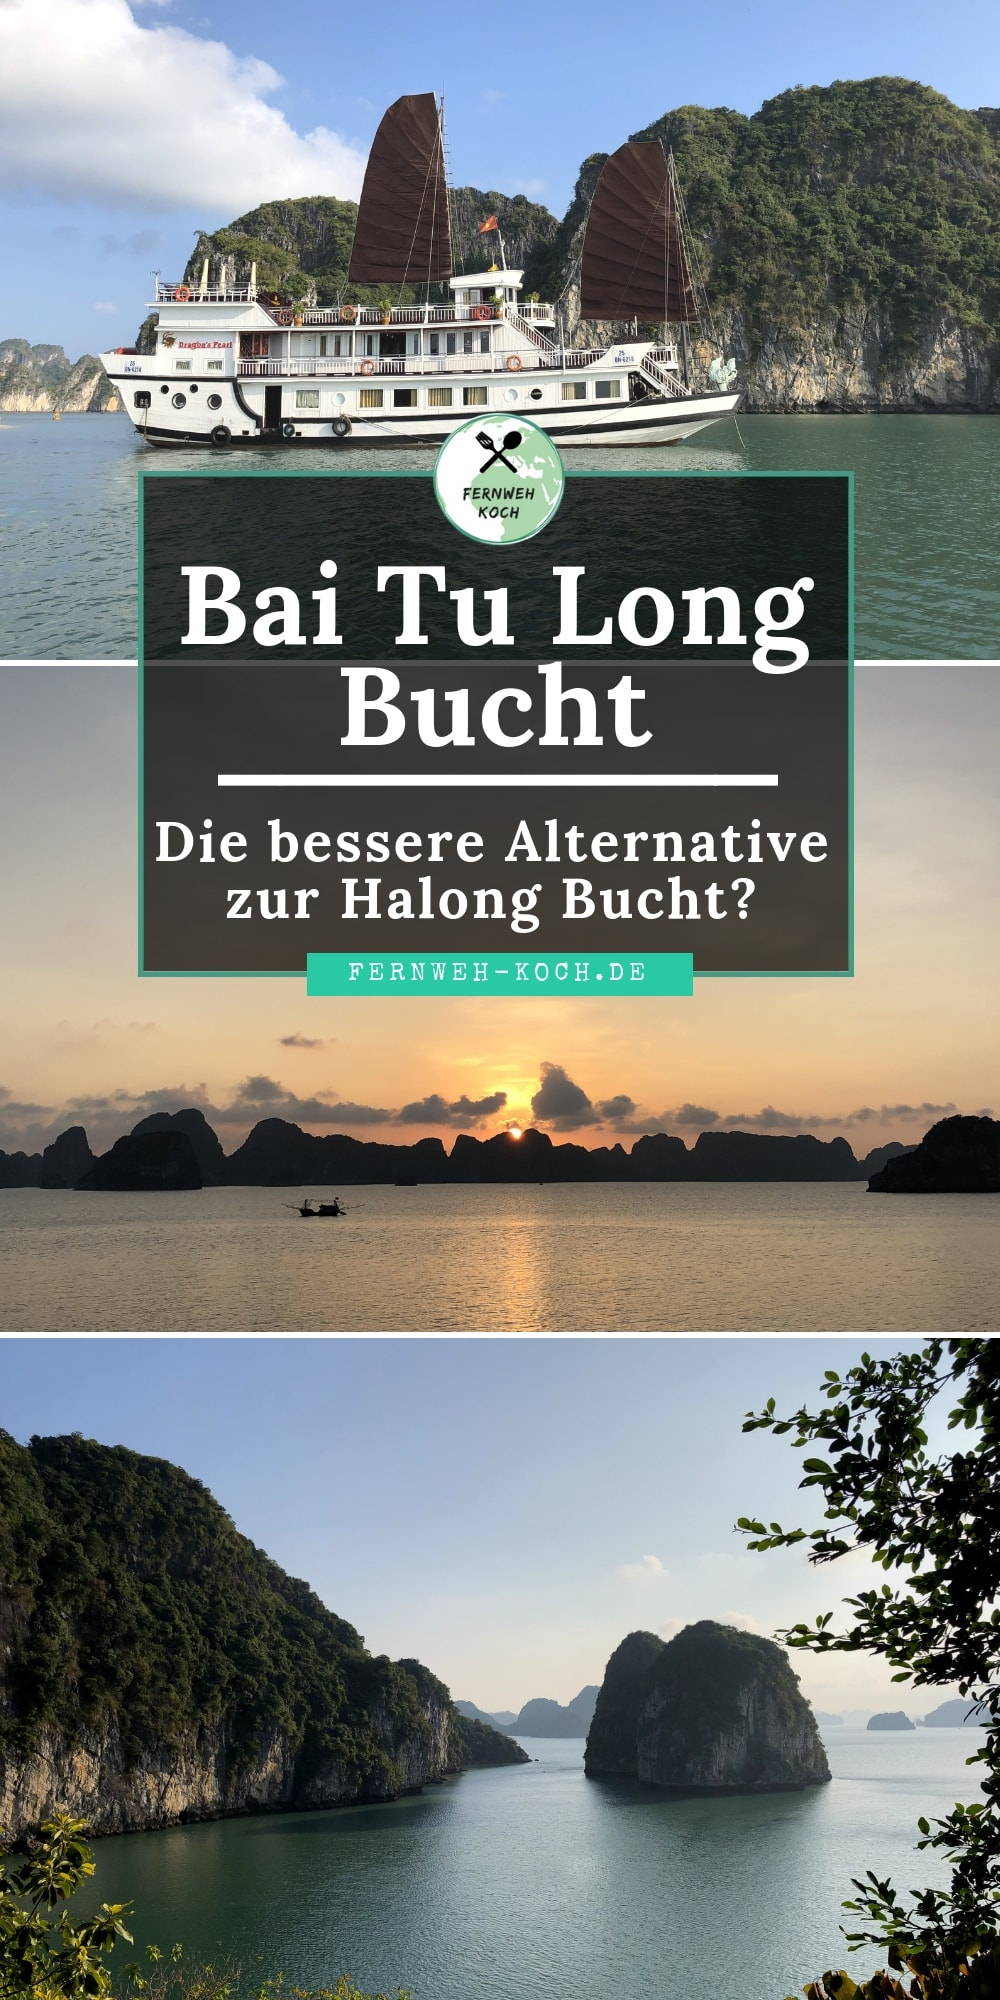 Bai Tu Long Bucht in Vietnam